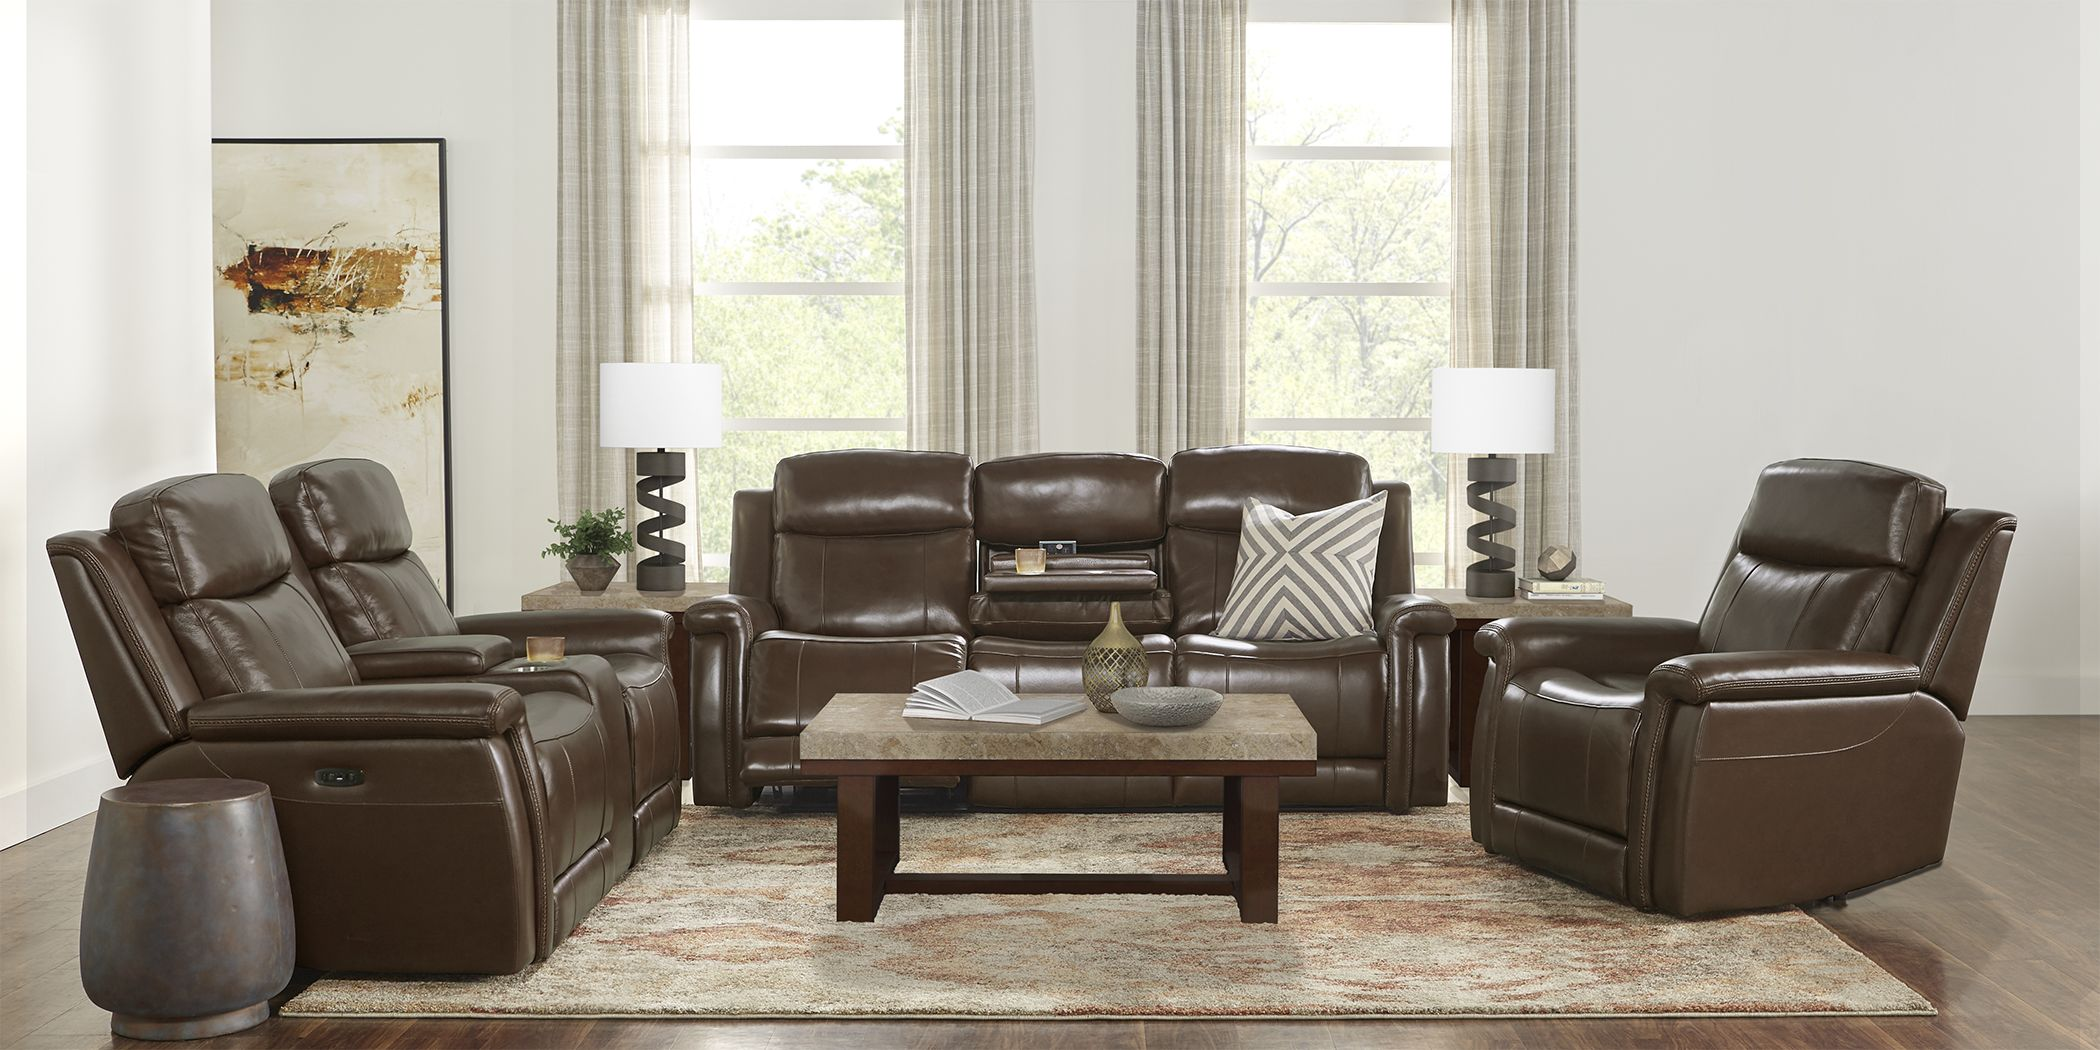 Leather Living Room Sets Furniture Collections